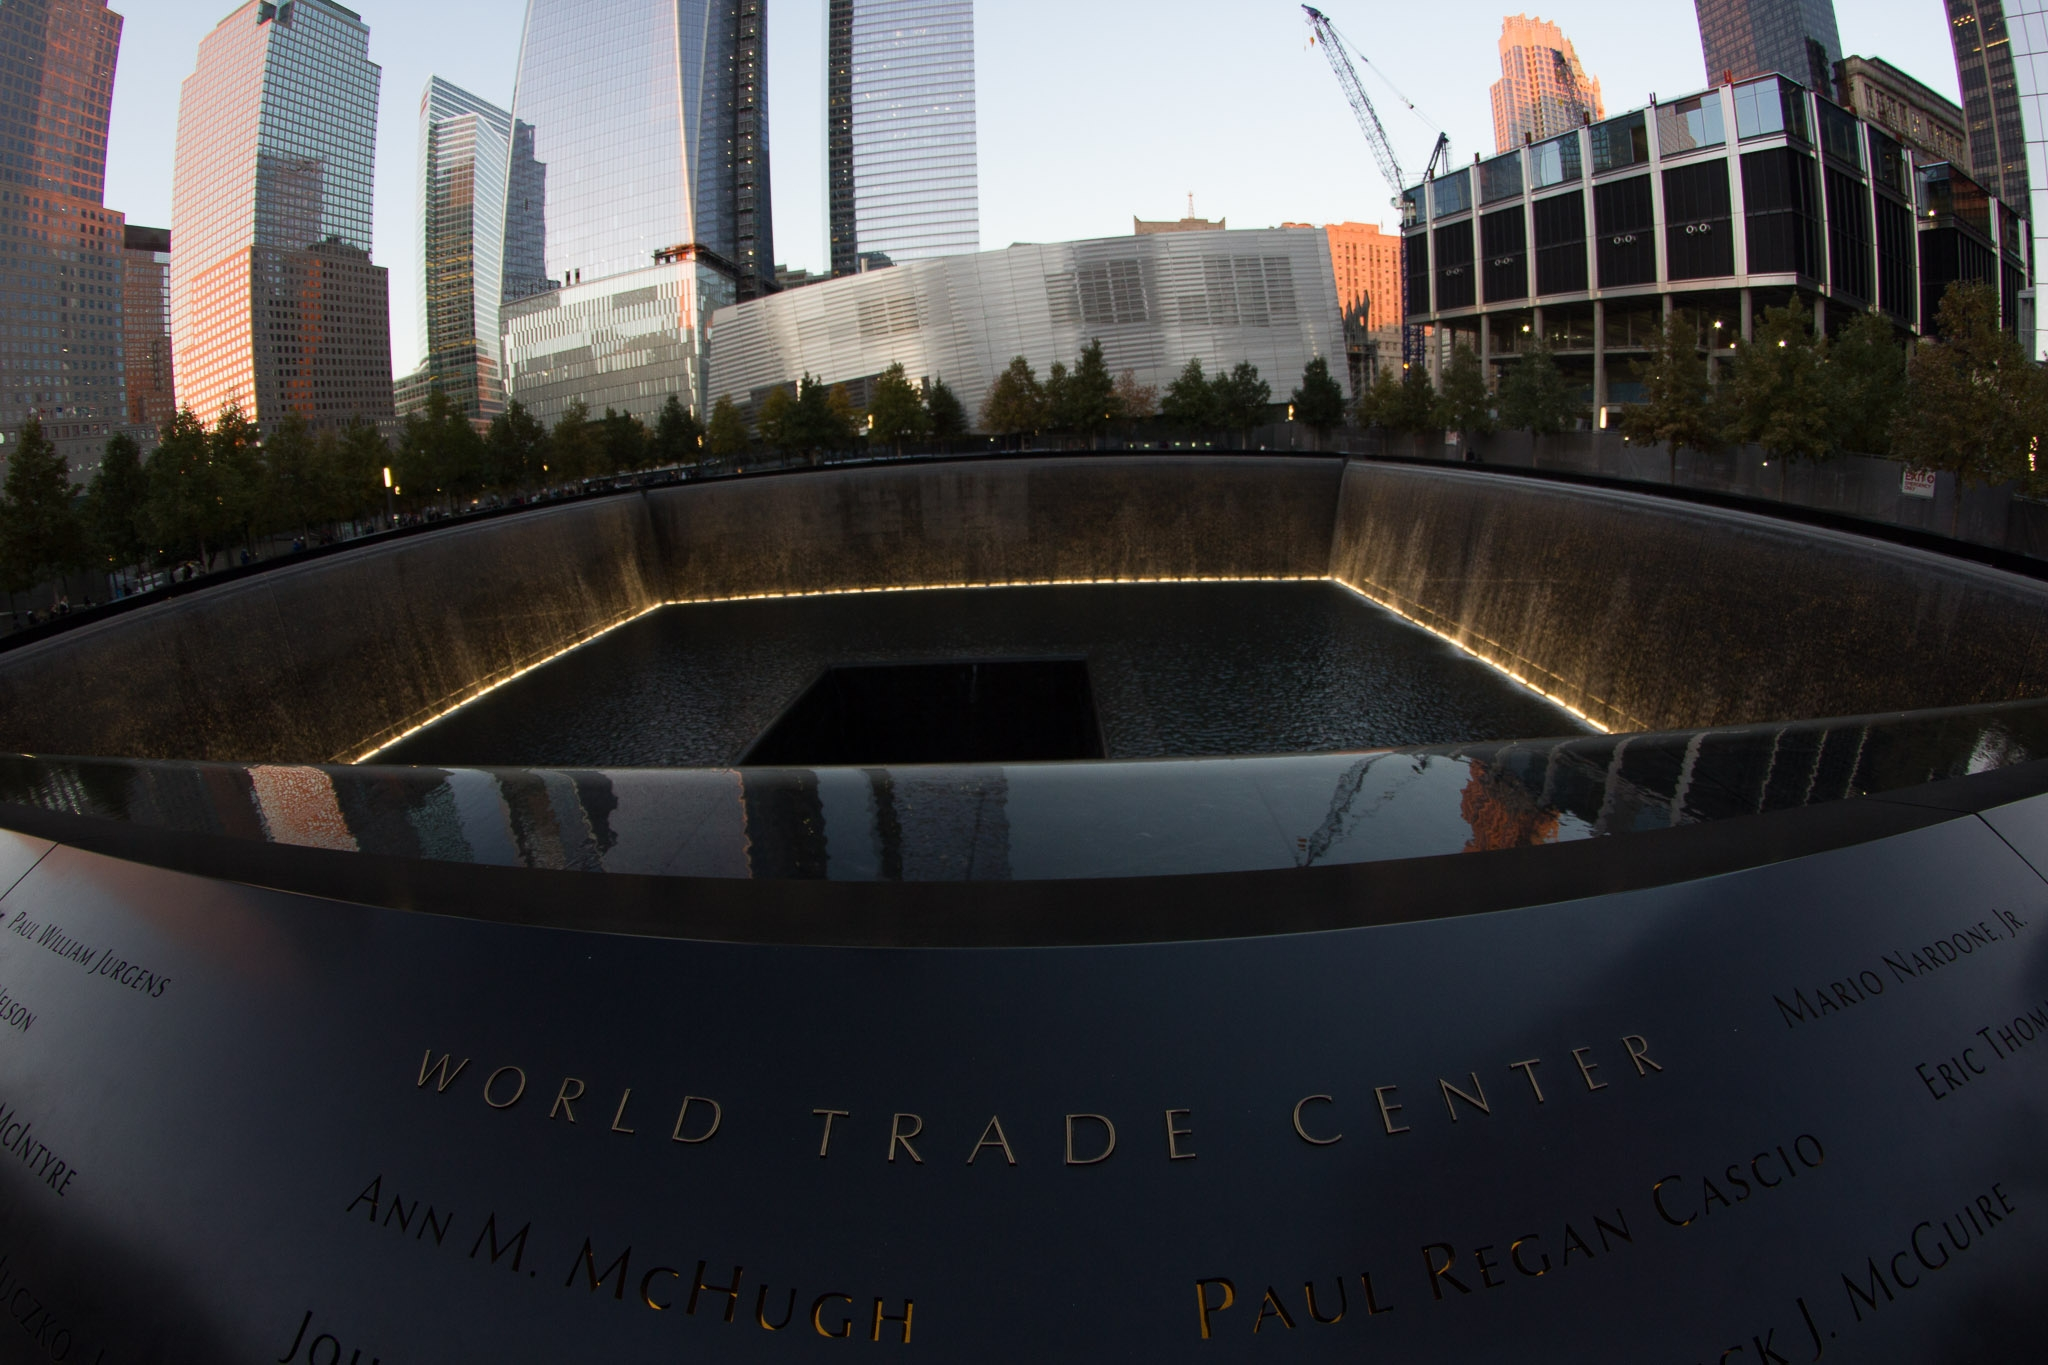 lights-at-9/11-memorial-fountains